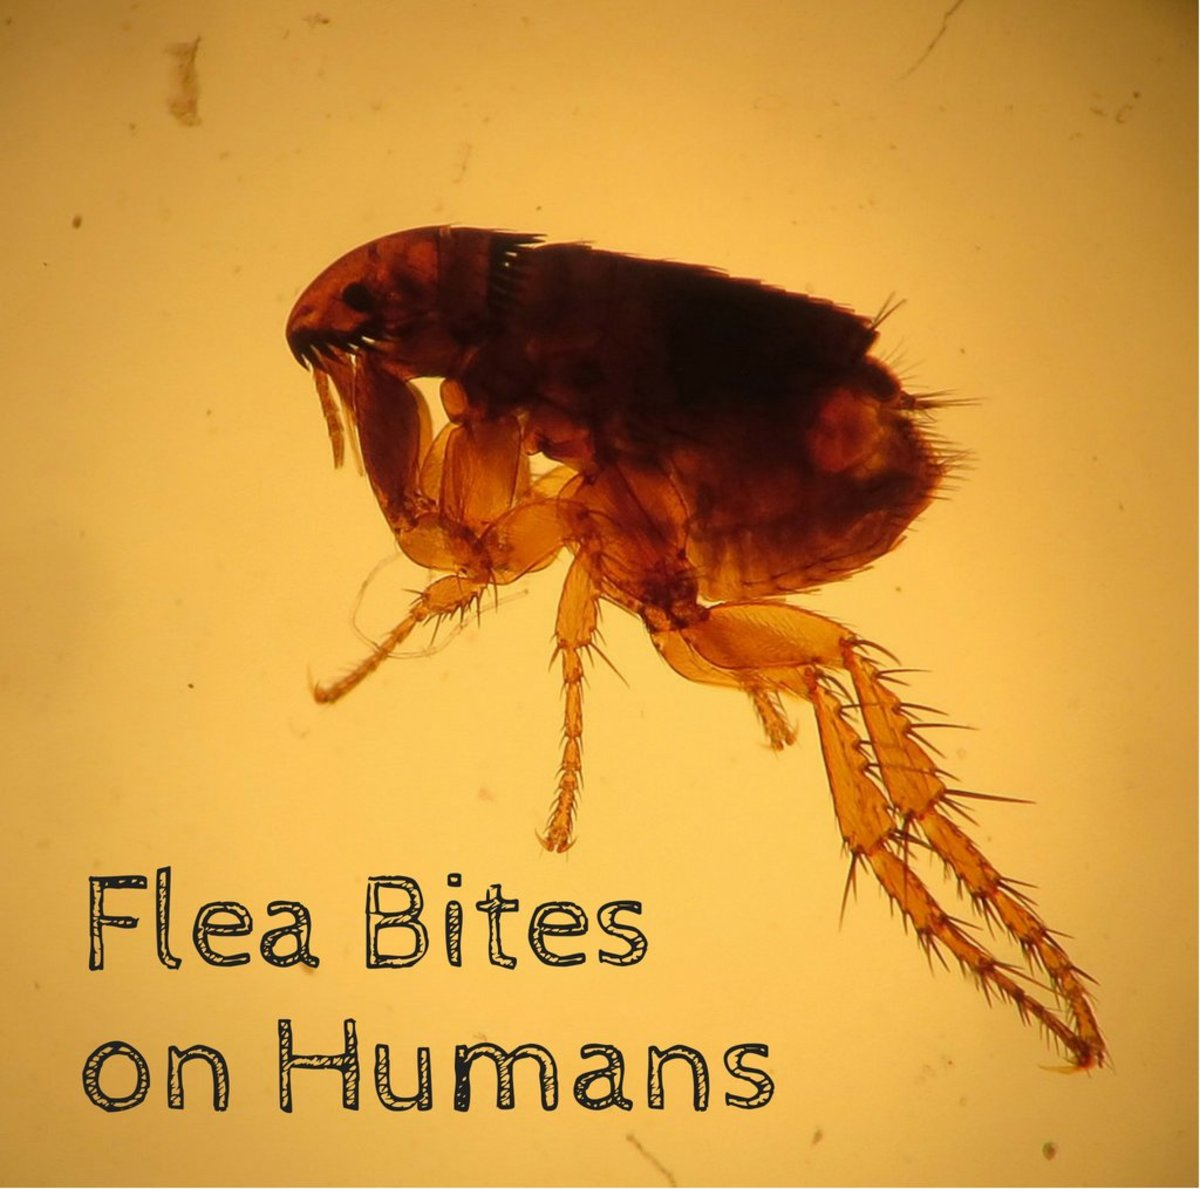 Flea Bites on Humans: Symptoms and Treatment